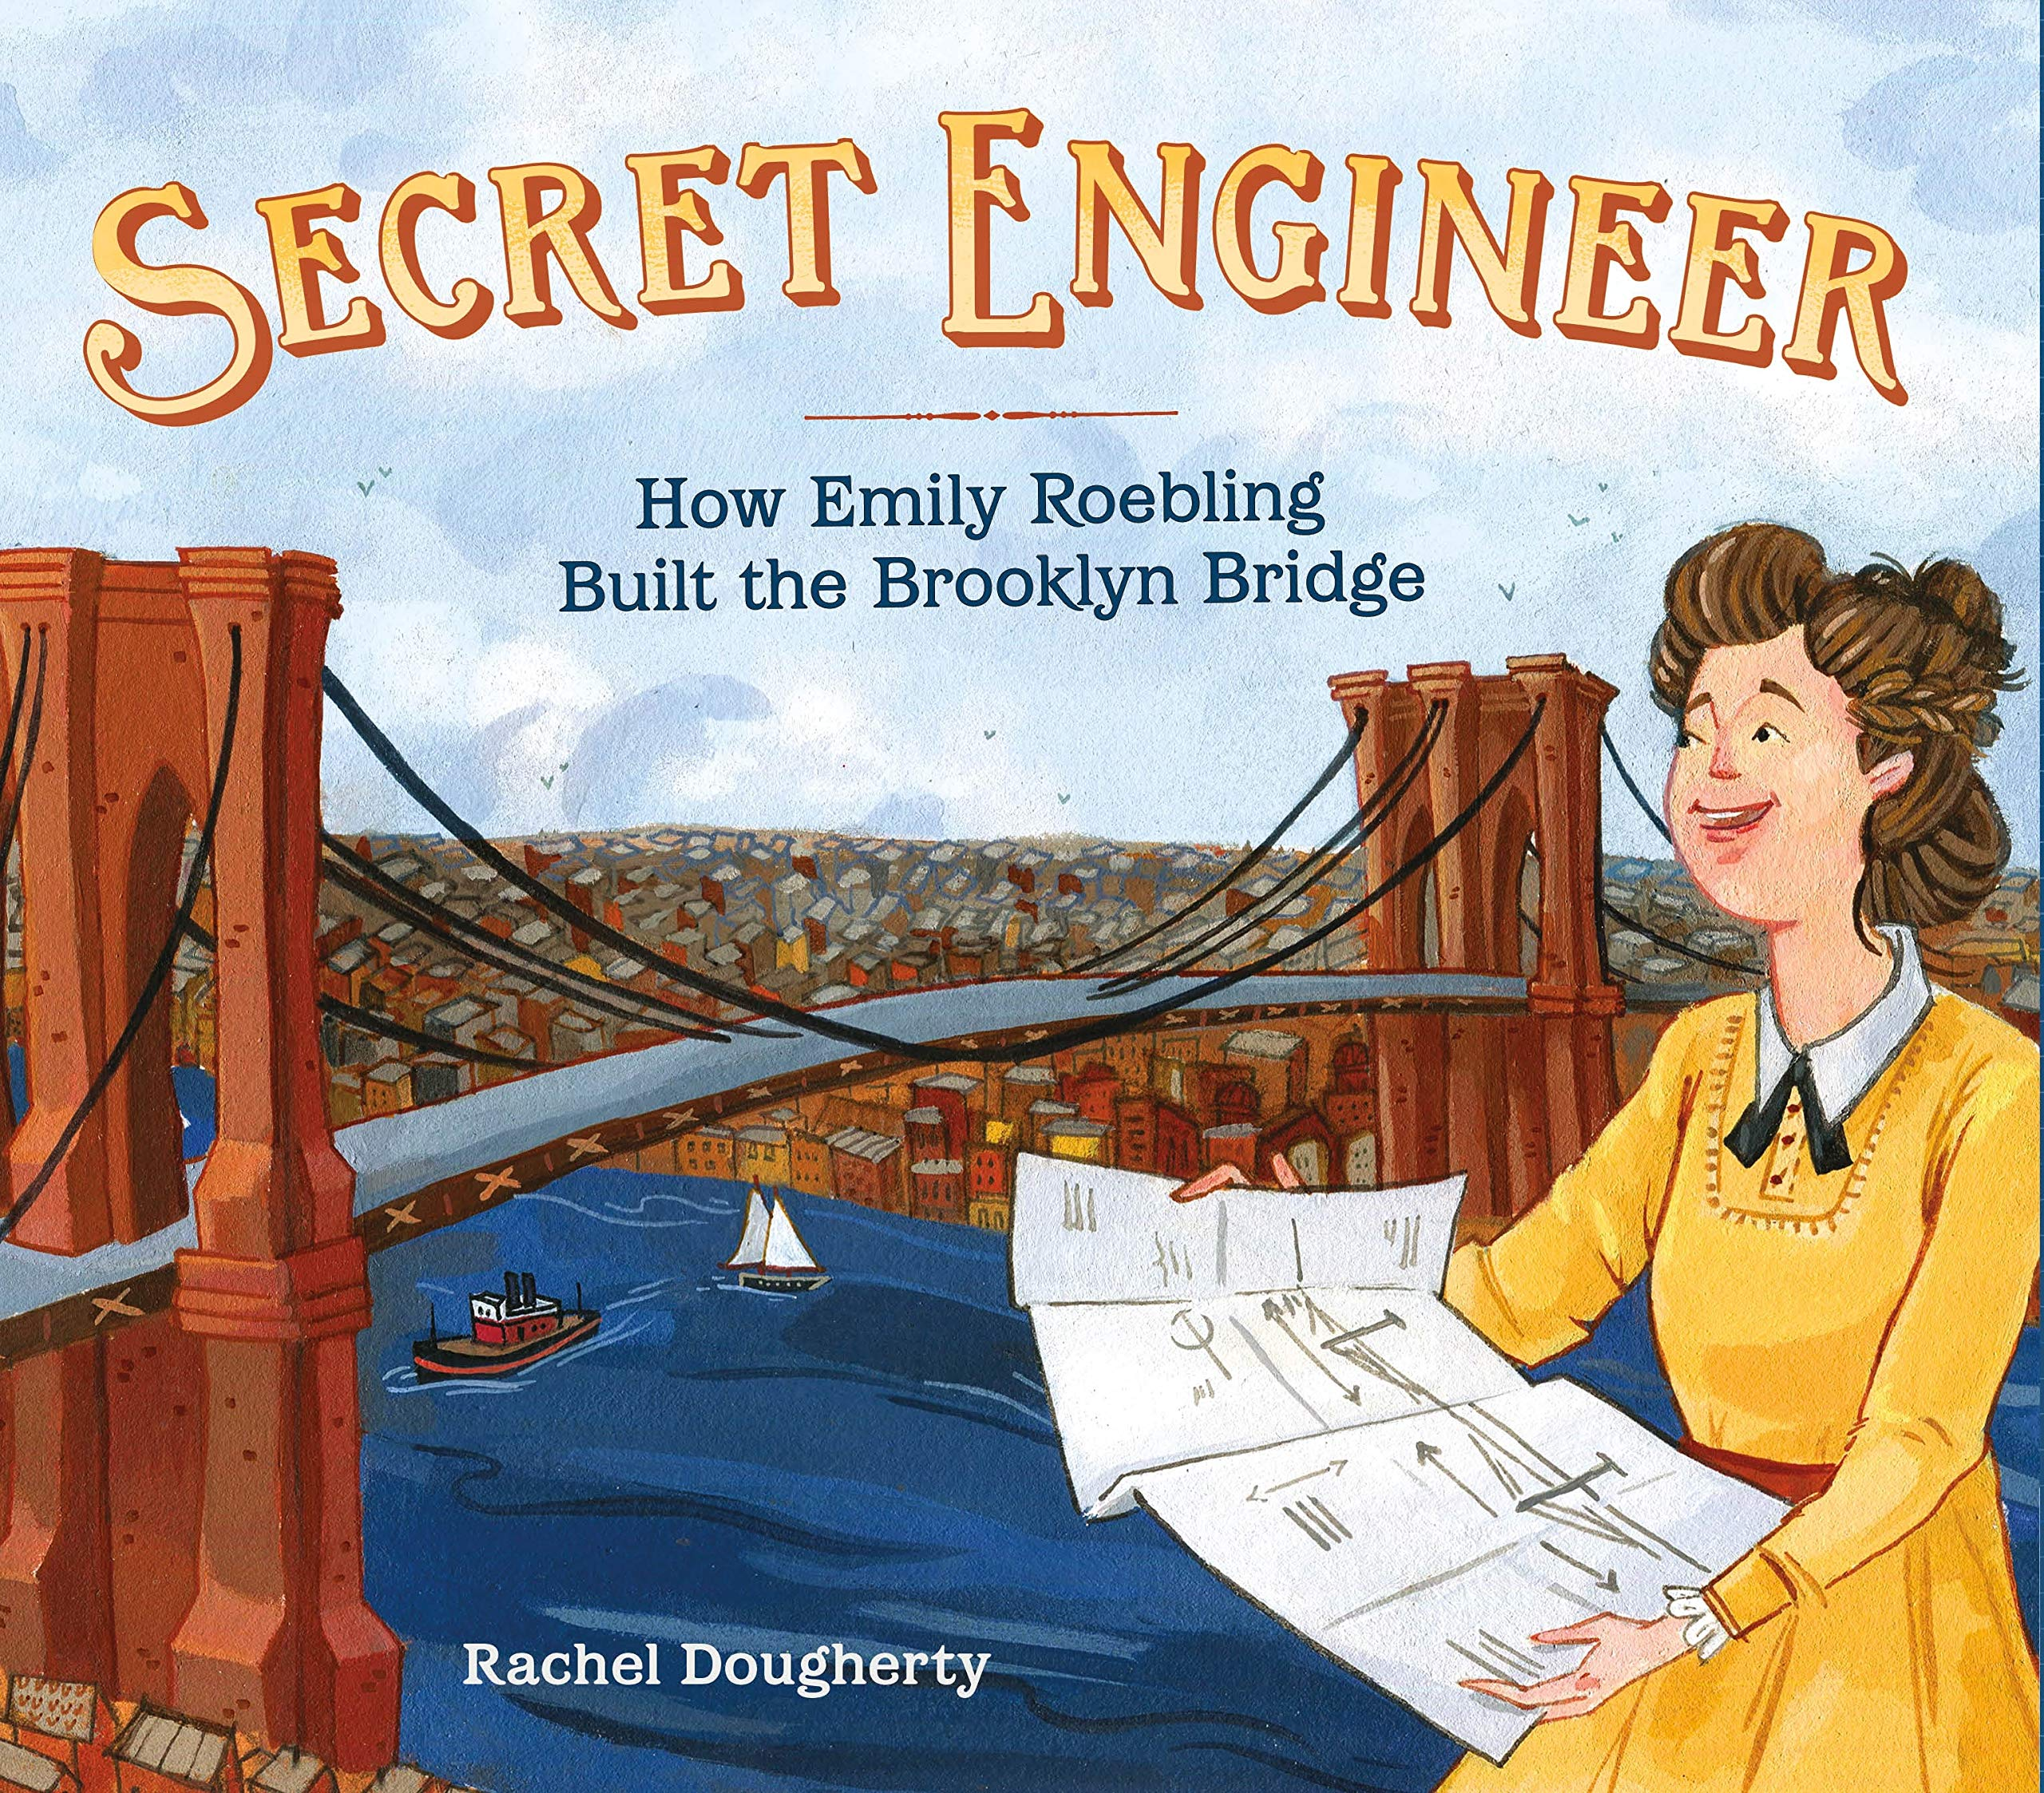 Secret Engineer: How Emily Roebling Built the Brooklyn Bridge ...